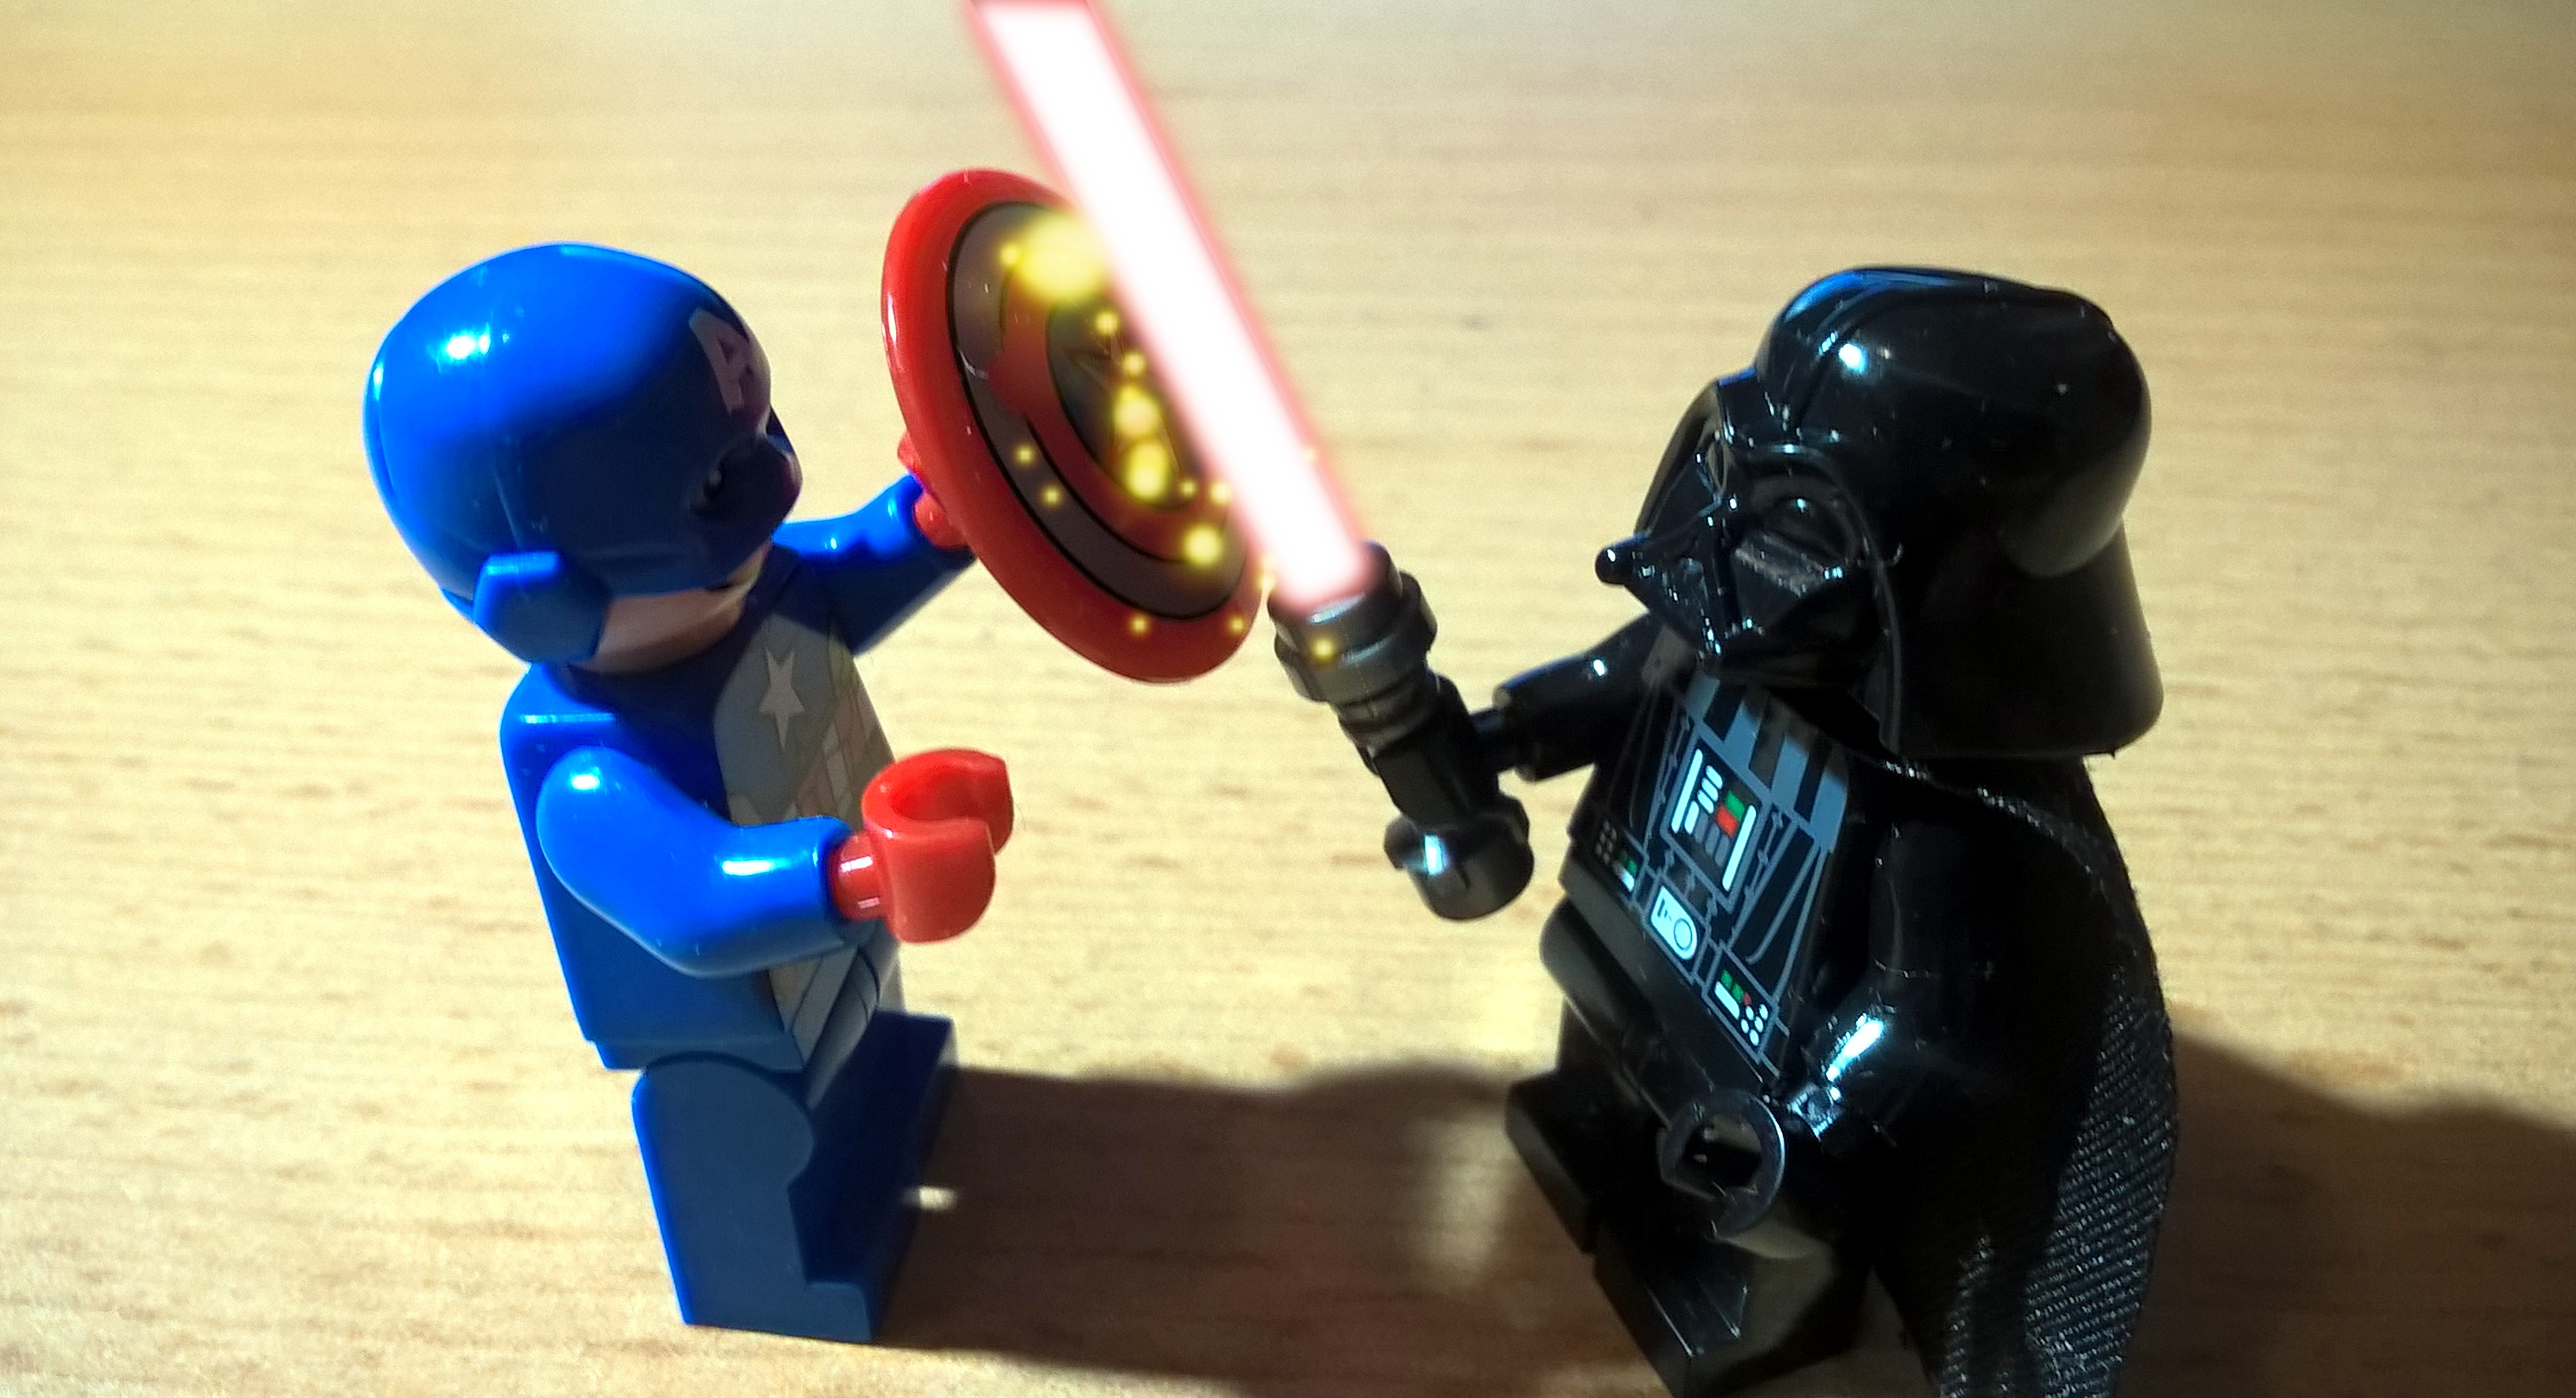 Darth Vader vs. Capitain America